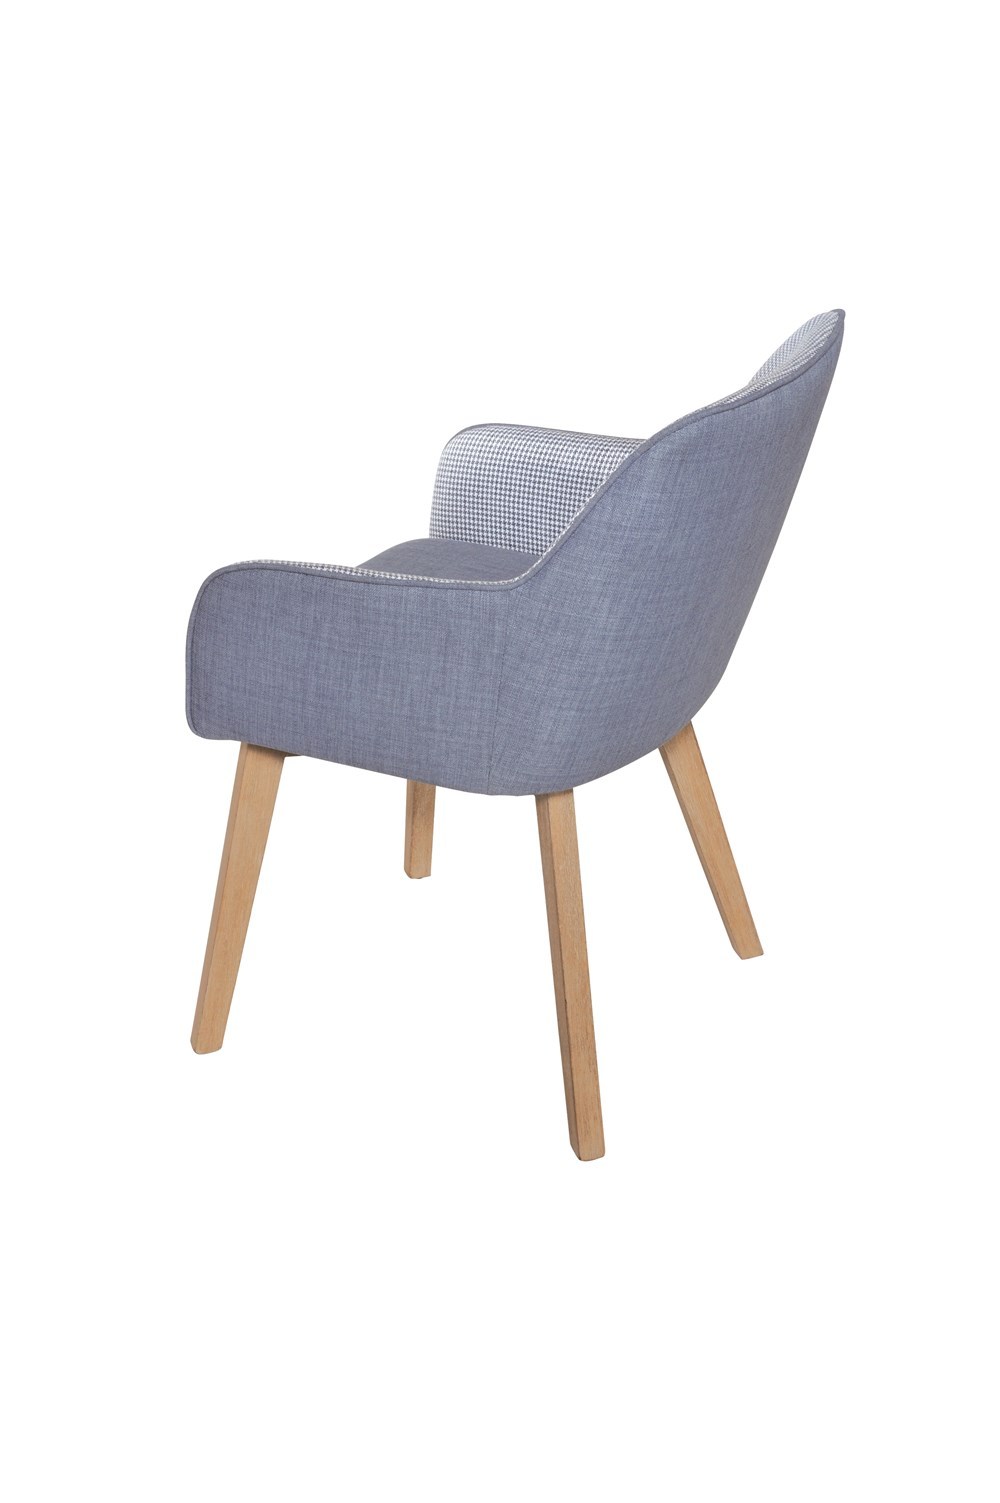 LOUISE Dining Chair in Blue Houndstooth with Natural Legs